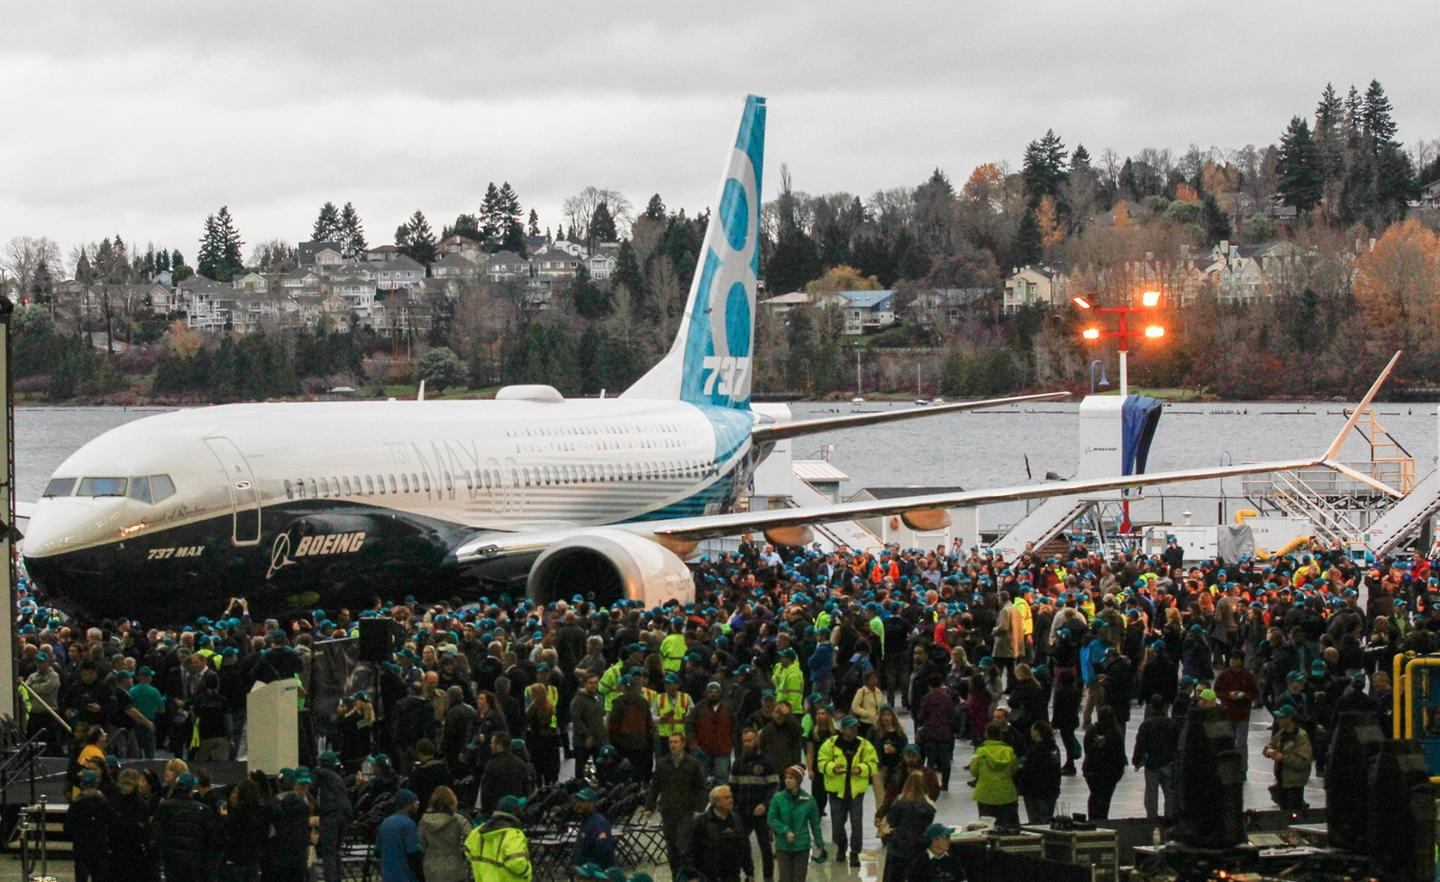 The 737 MAX 8 was presented to Boeing employees on Tuesday (Dec. 8)